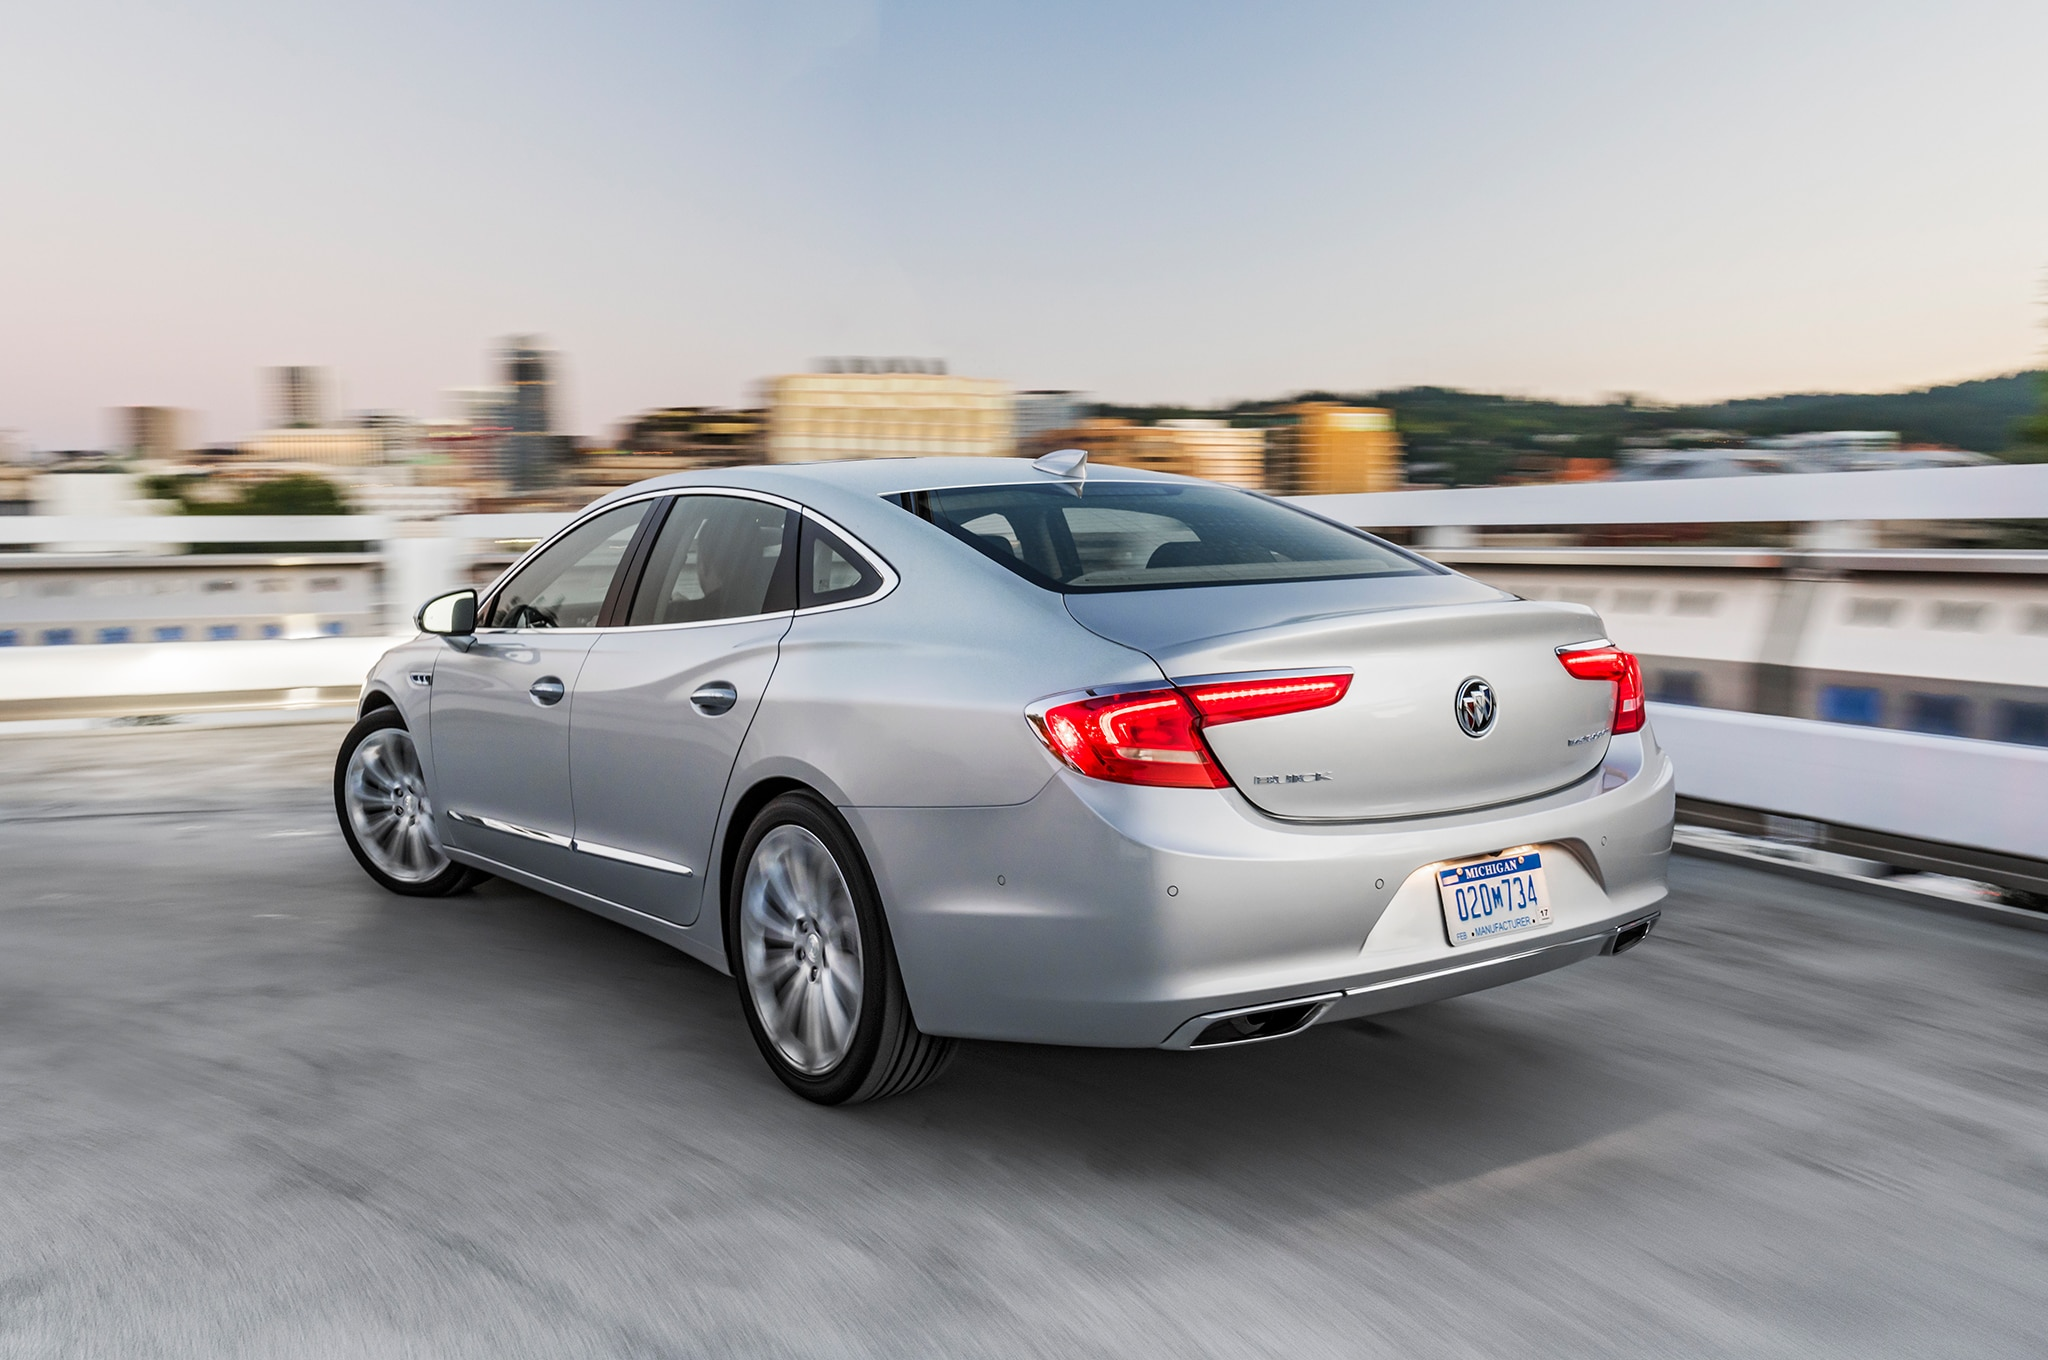 brand buick Buick is an international modern luxury brand offering vehicles with sculpted designs, luxurious interiors and thoughtful personal technologies, along with responsive.